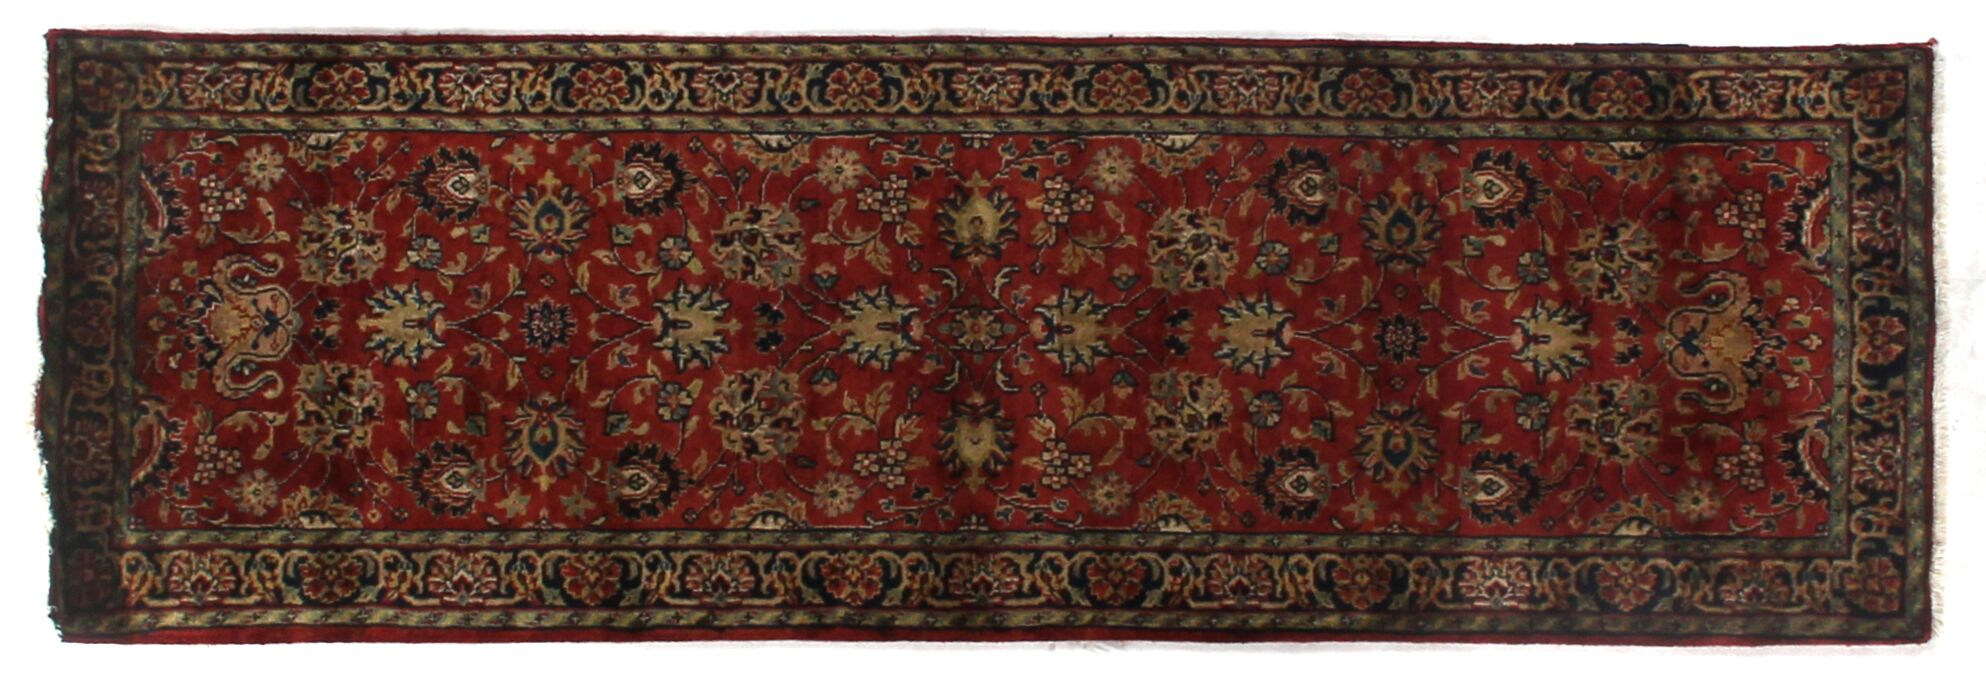 Super Mashad Hand-Knotted Wool Black/Cream Area Rug Rug Size: Runner 2'6